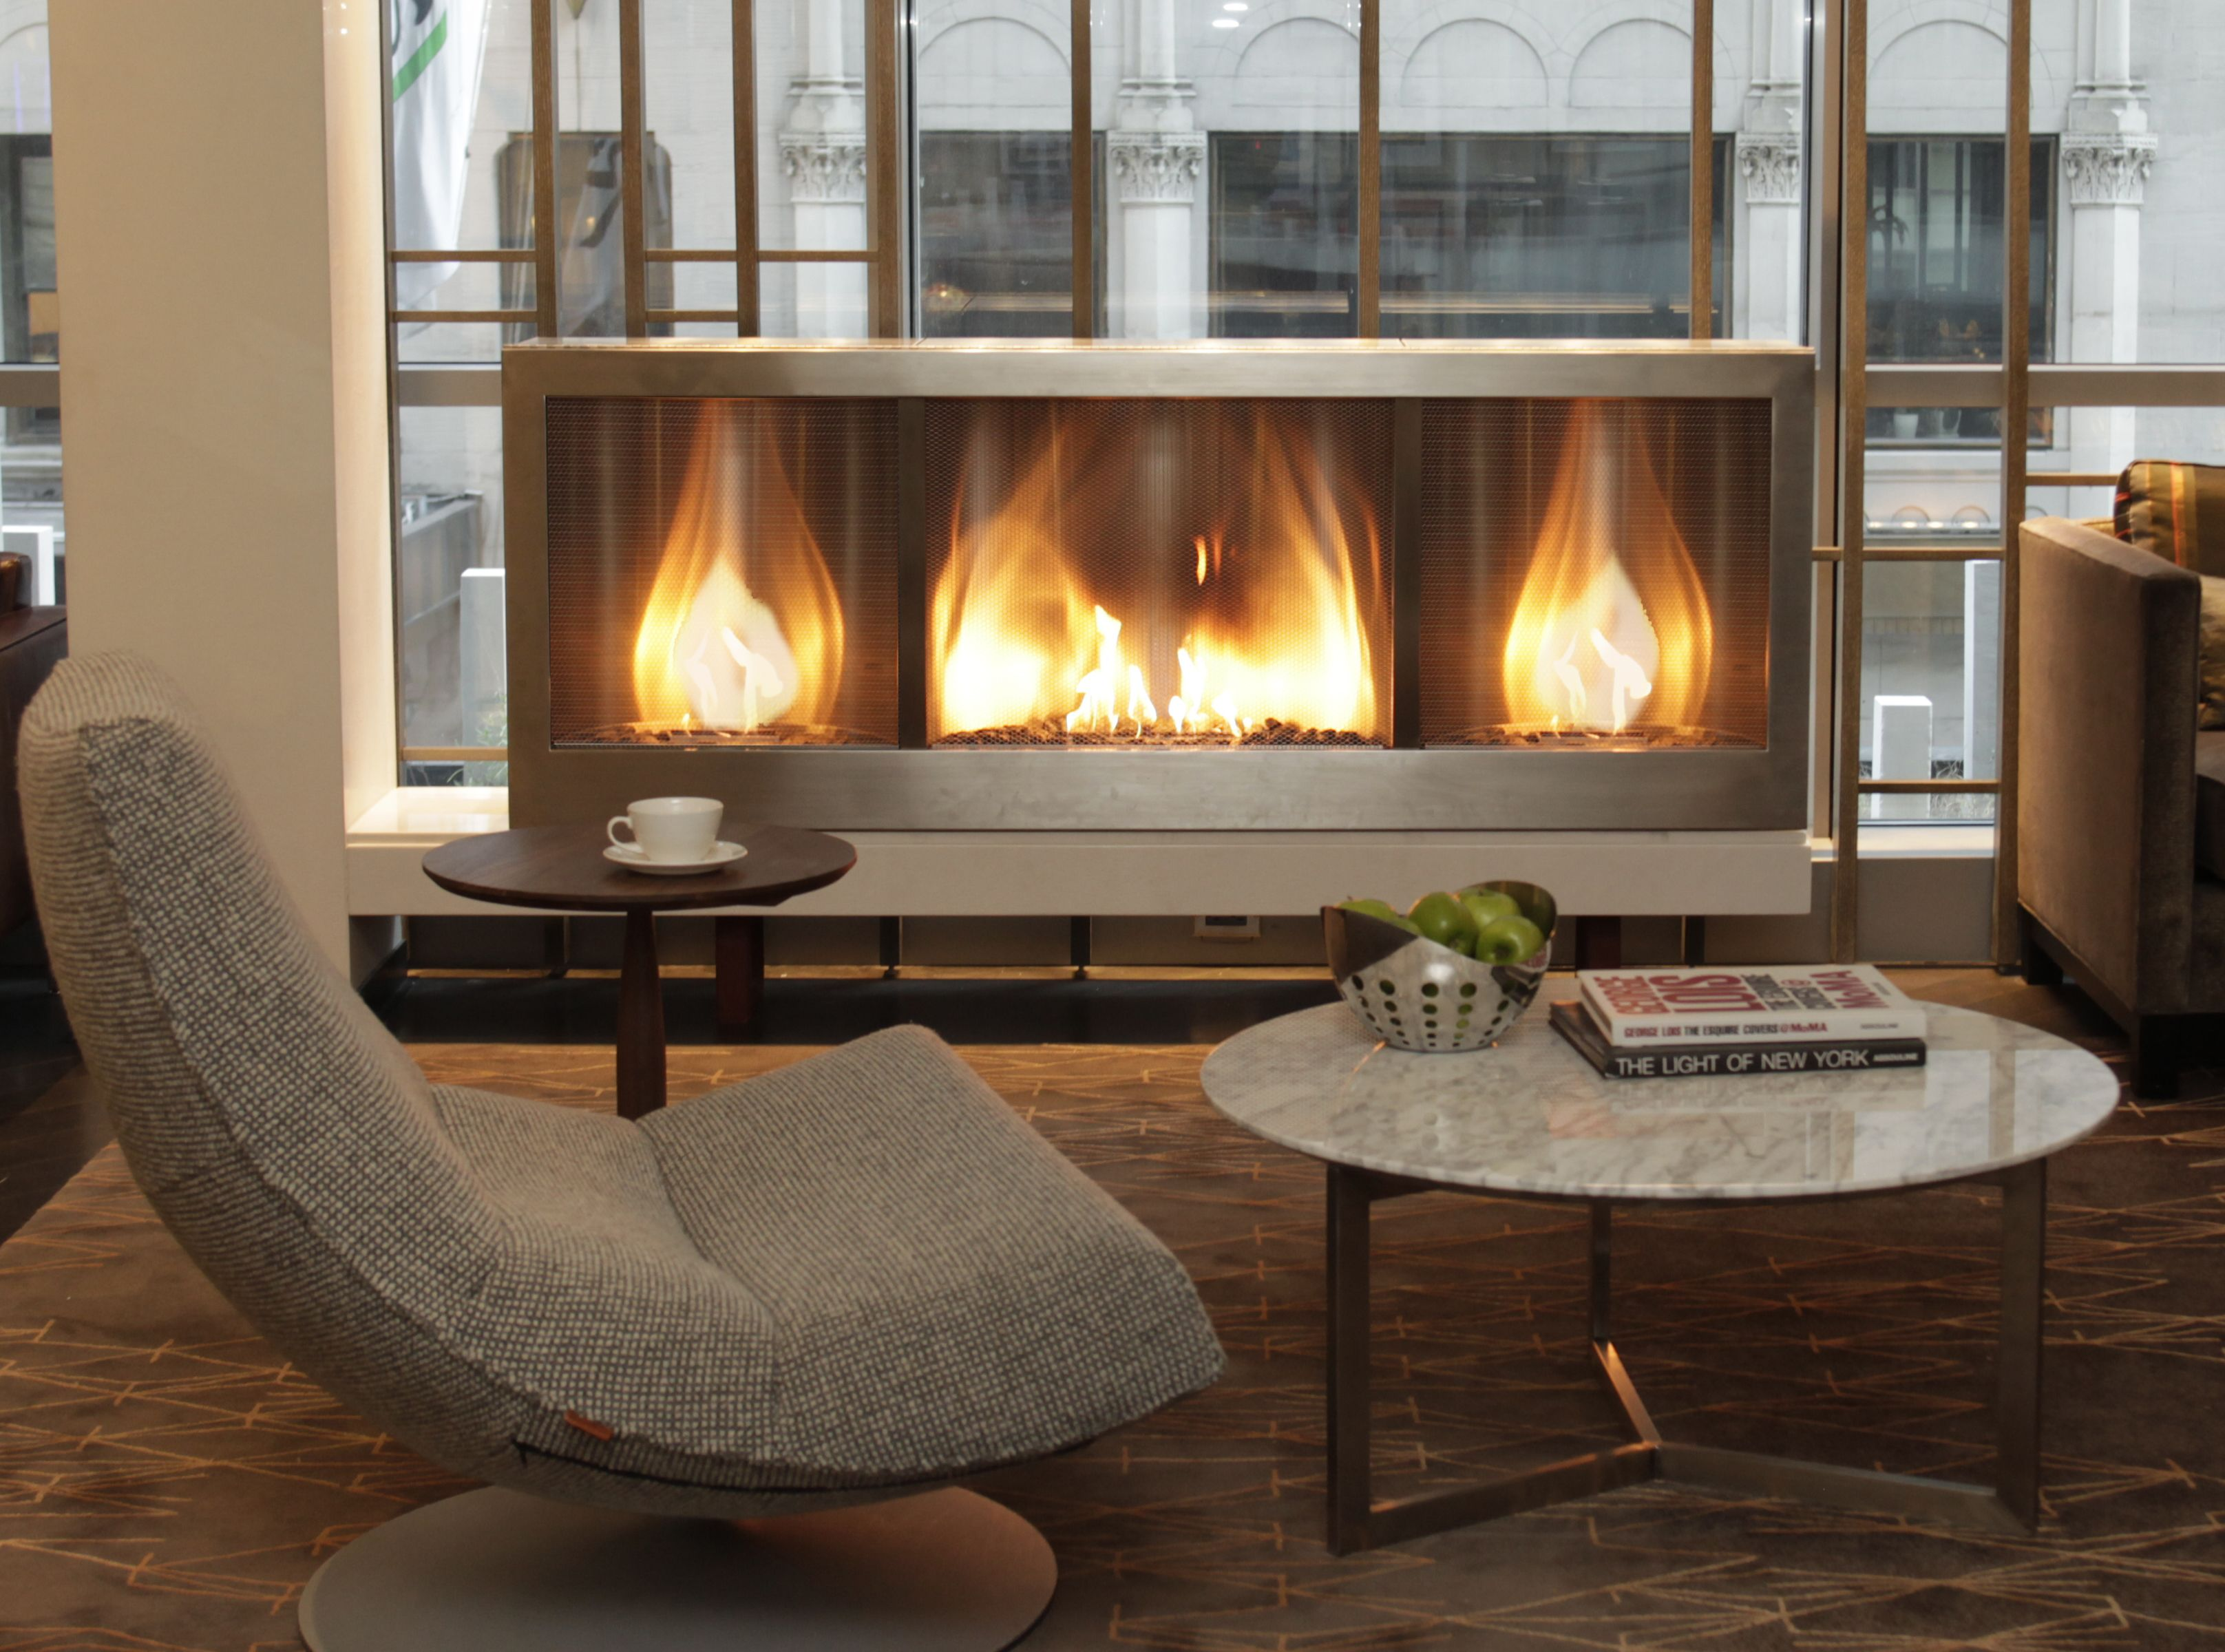 Custom Long Stainless Steel Hearth Cabinet Ventless Fireplace